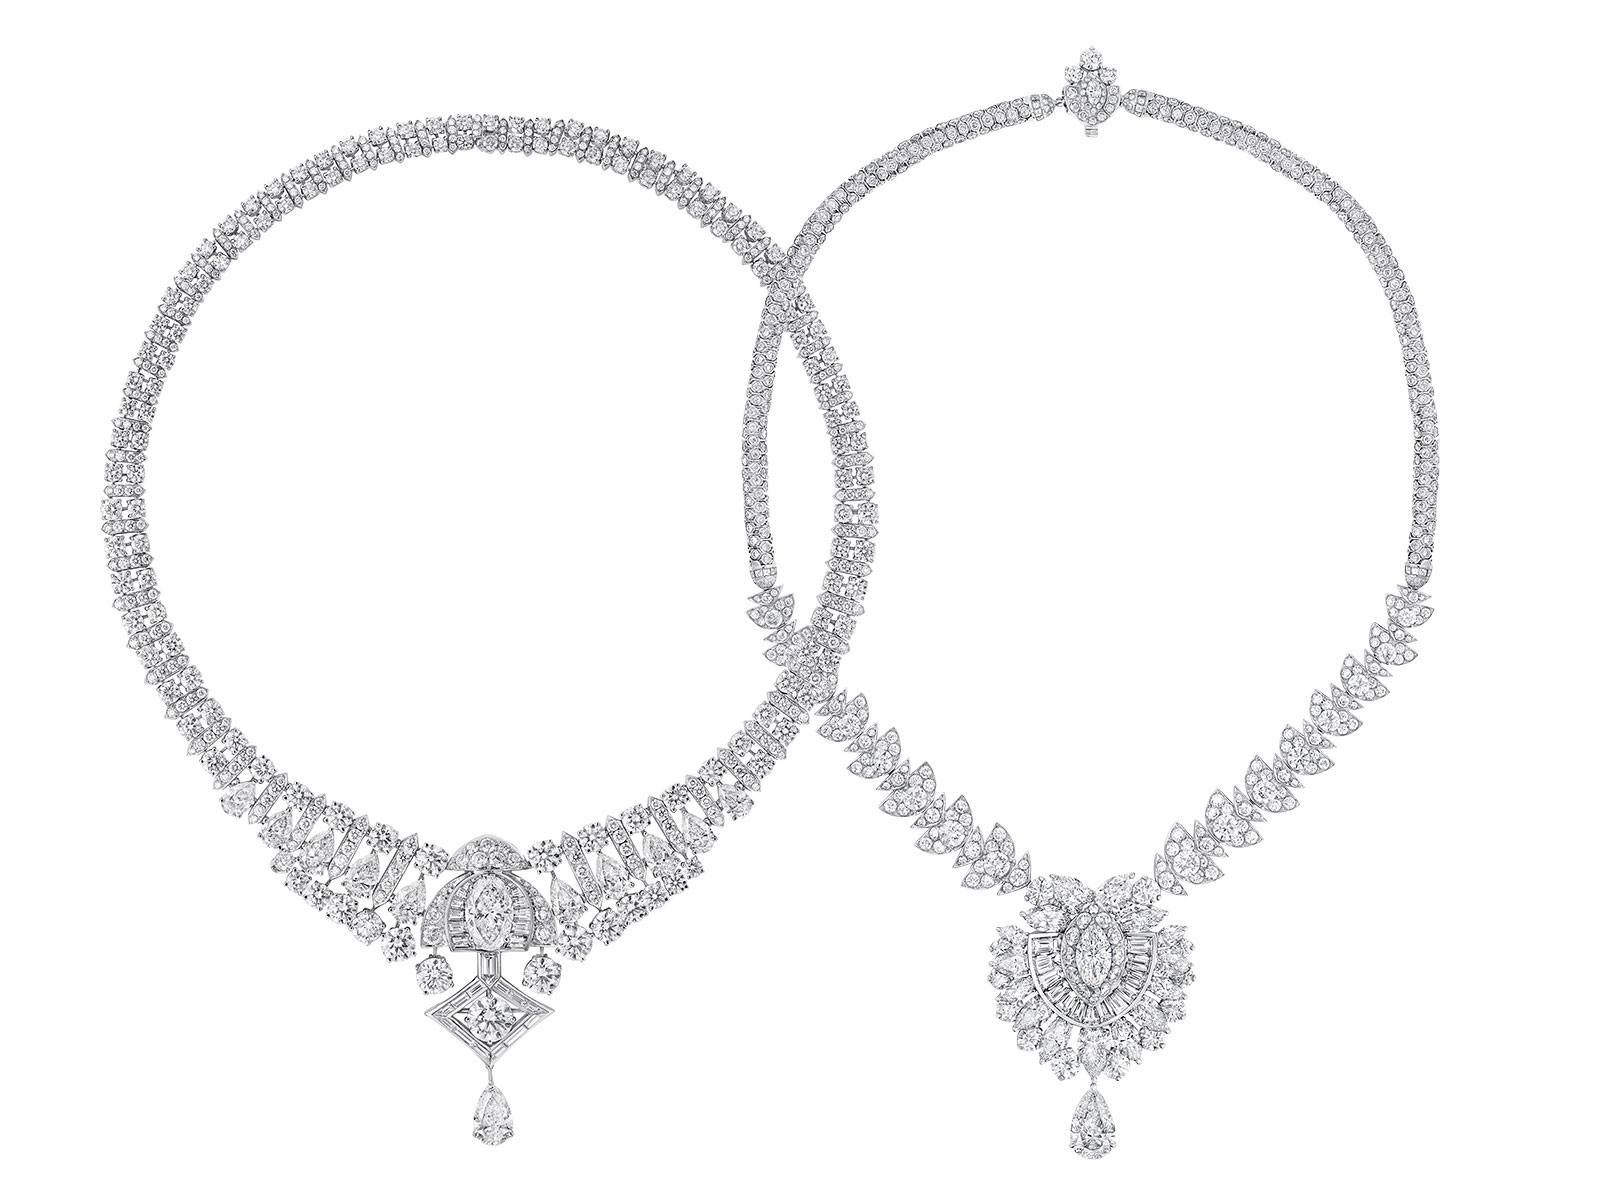 Two necklaces from the Graff Tribal High Jewellery Collection with 52 carats and 43 carats of diamonds, respectively